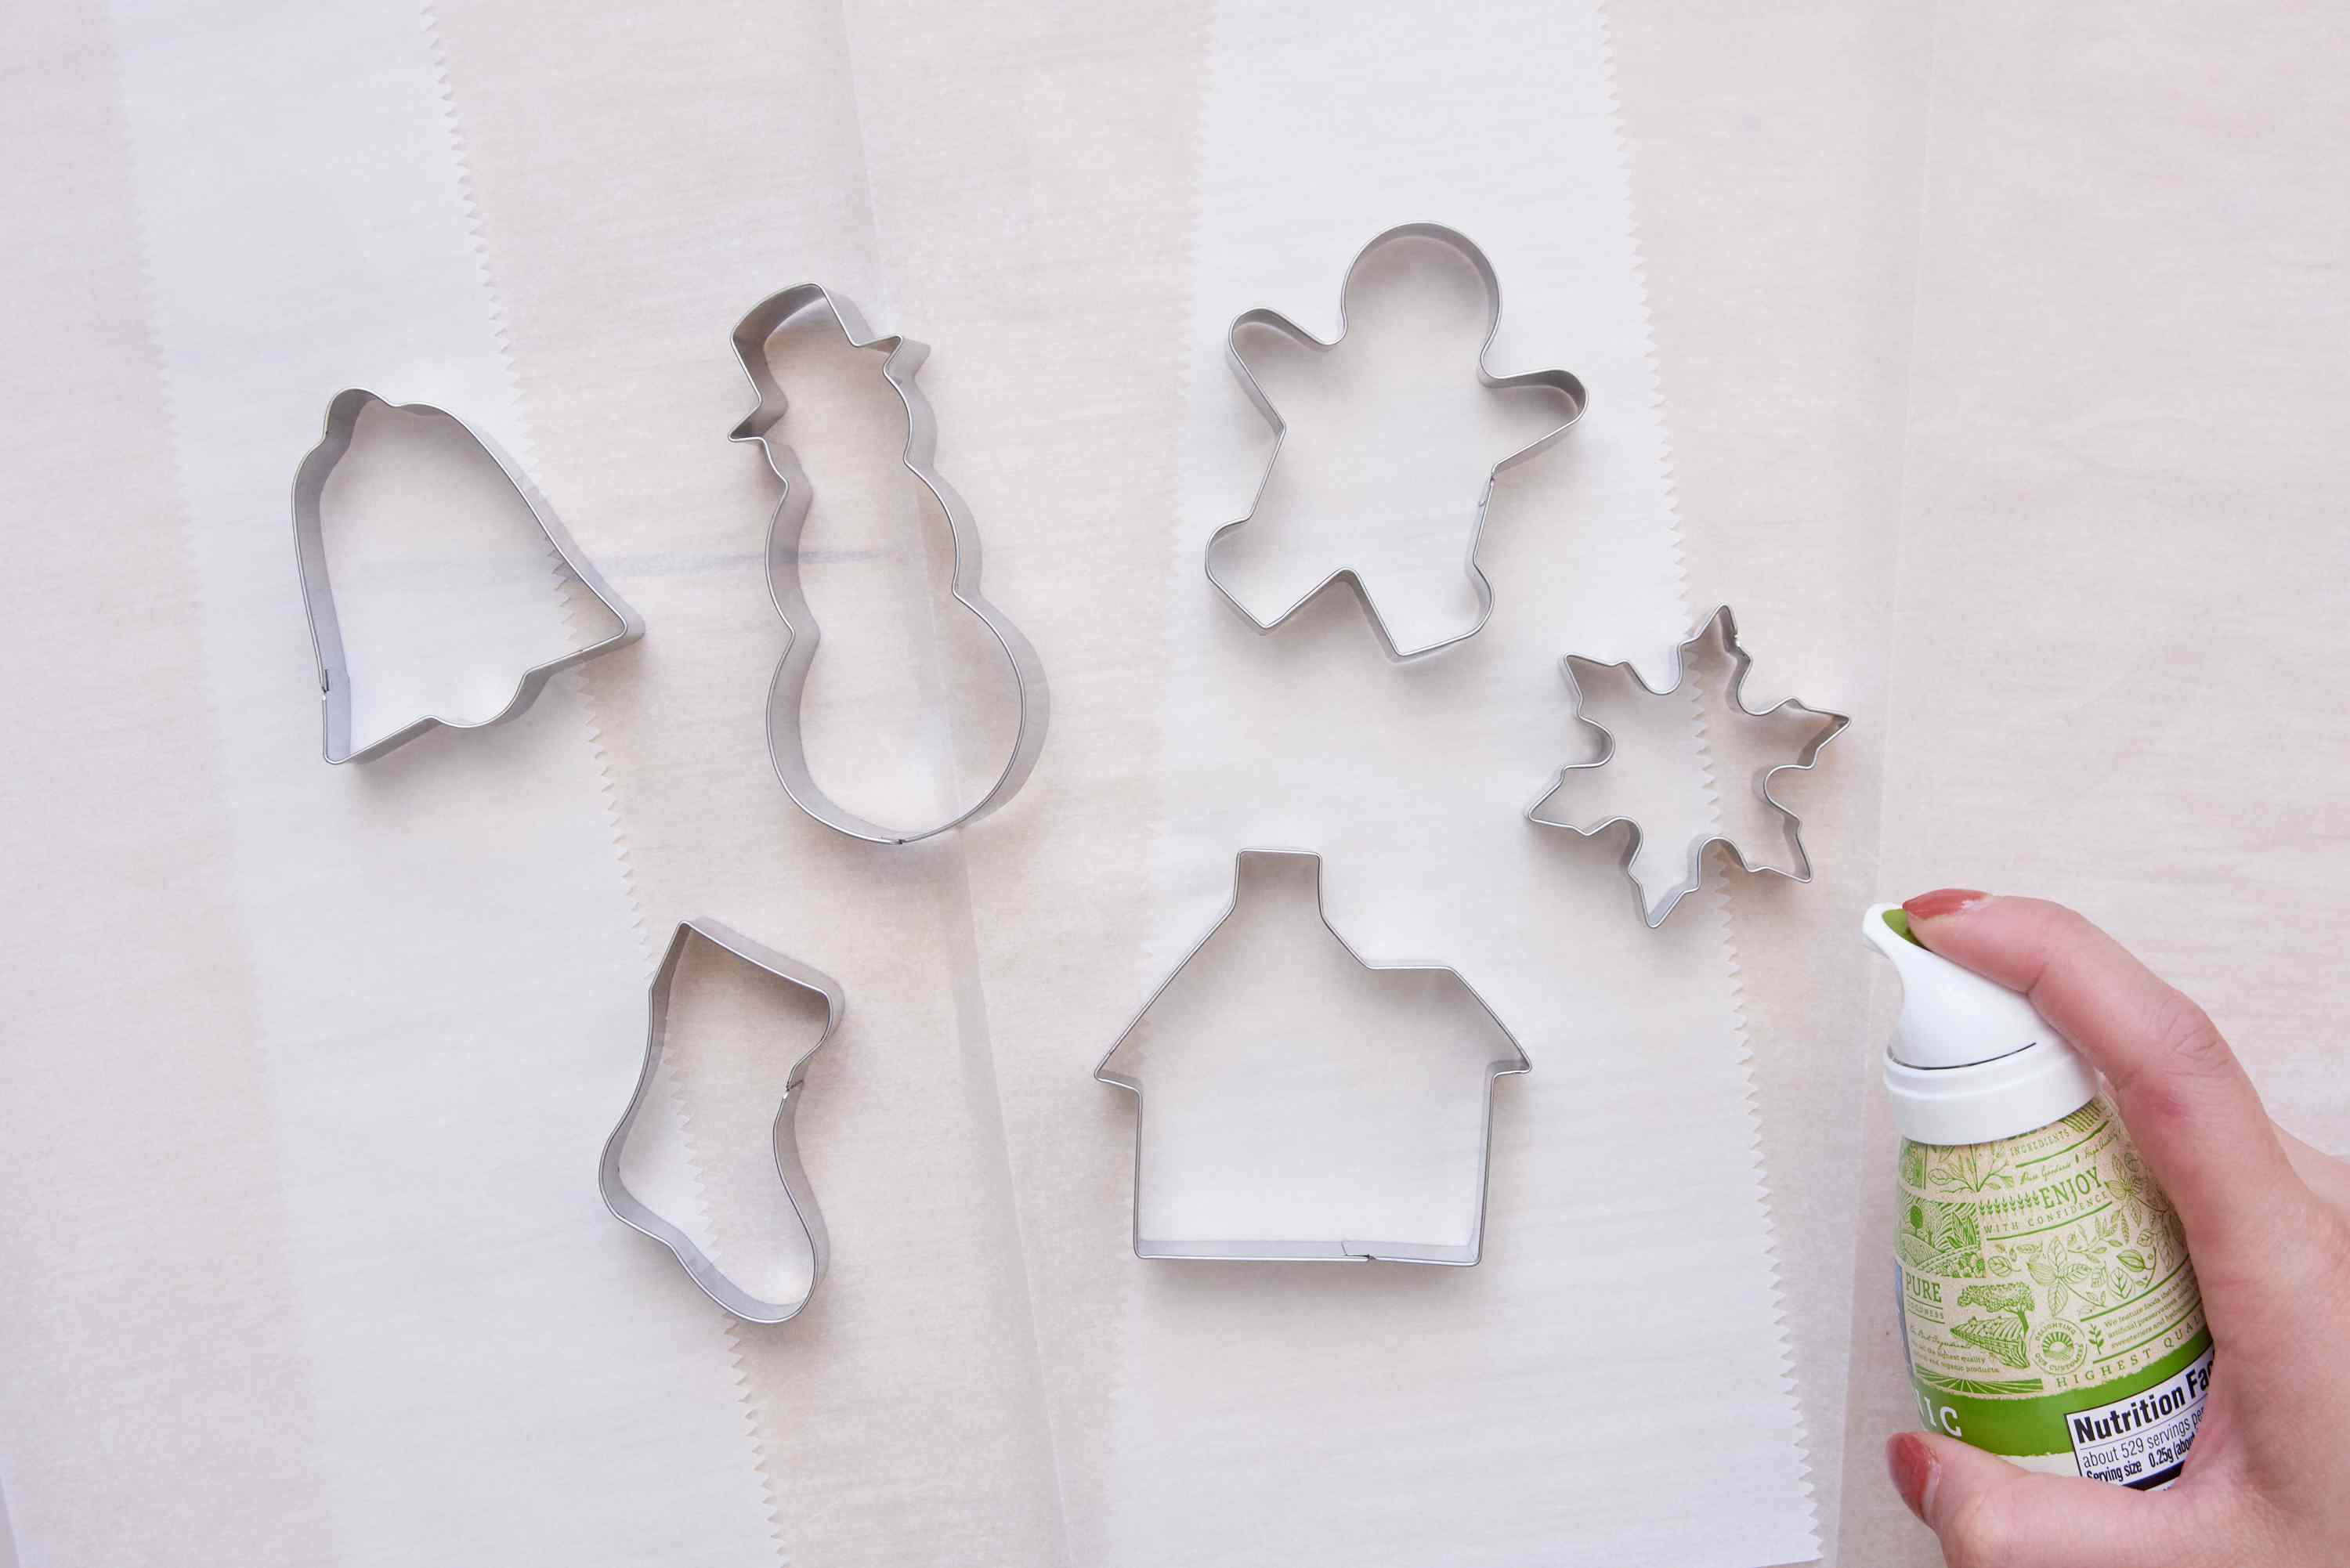 spraying the cookie cutters with cooking spray